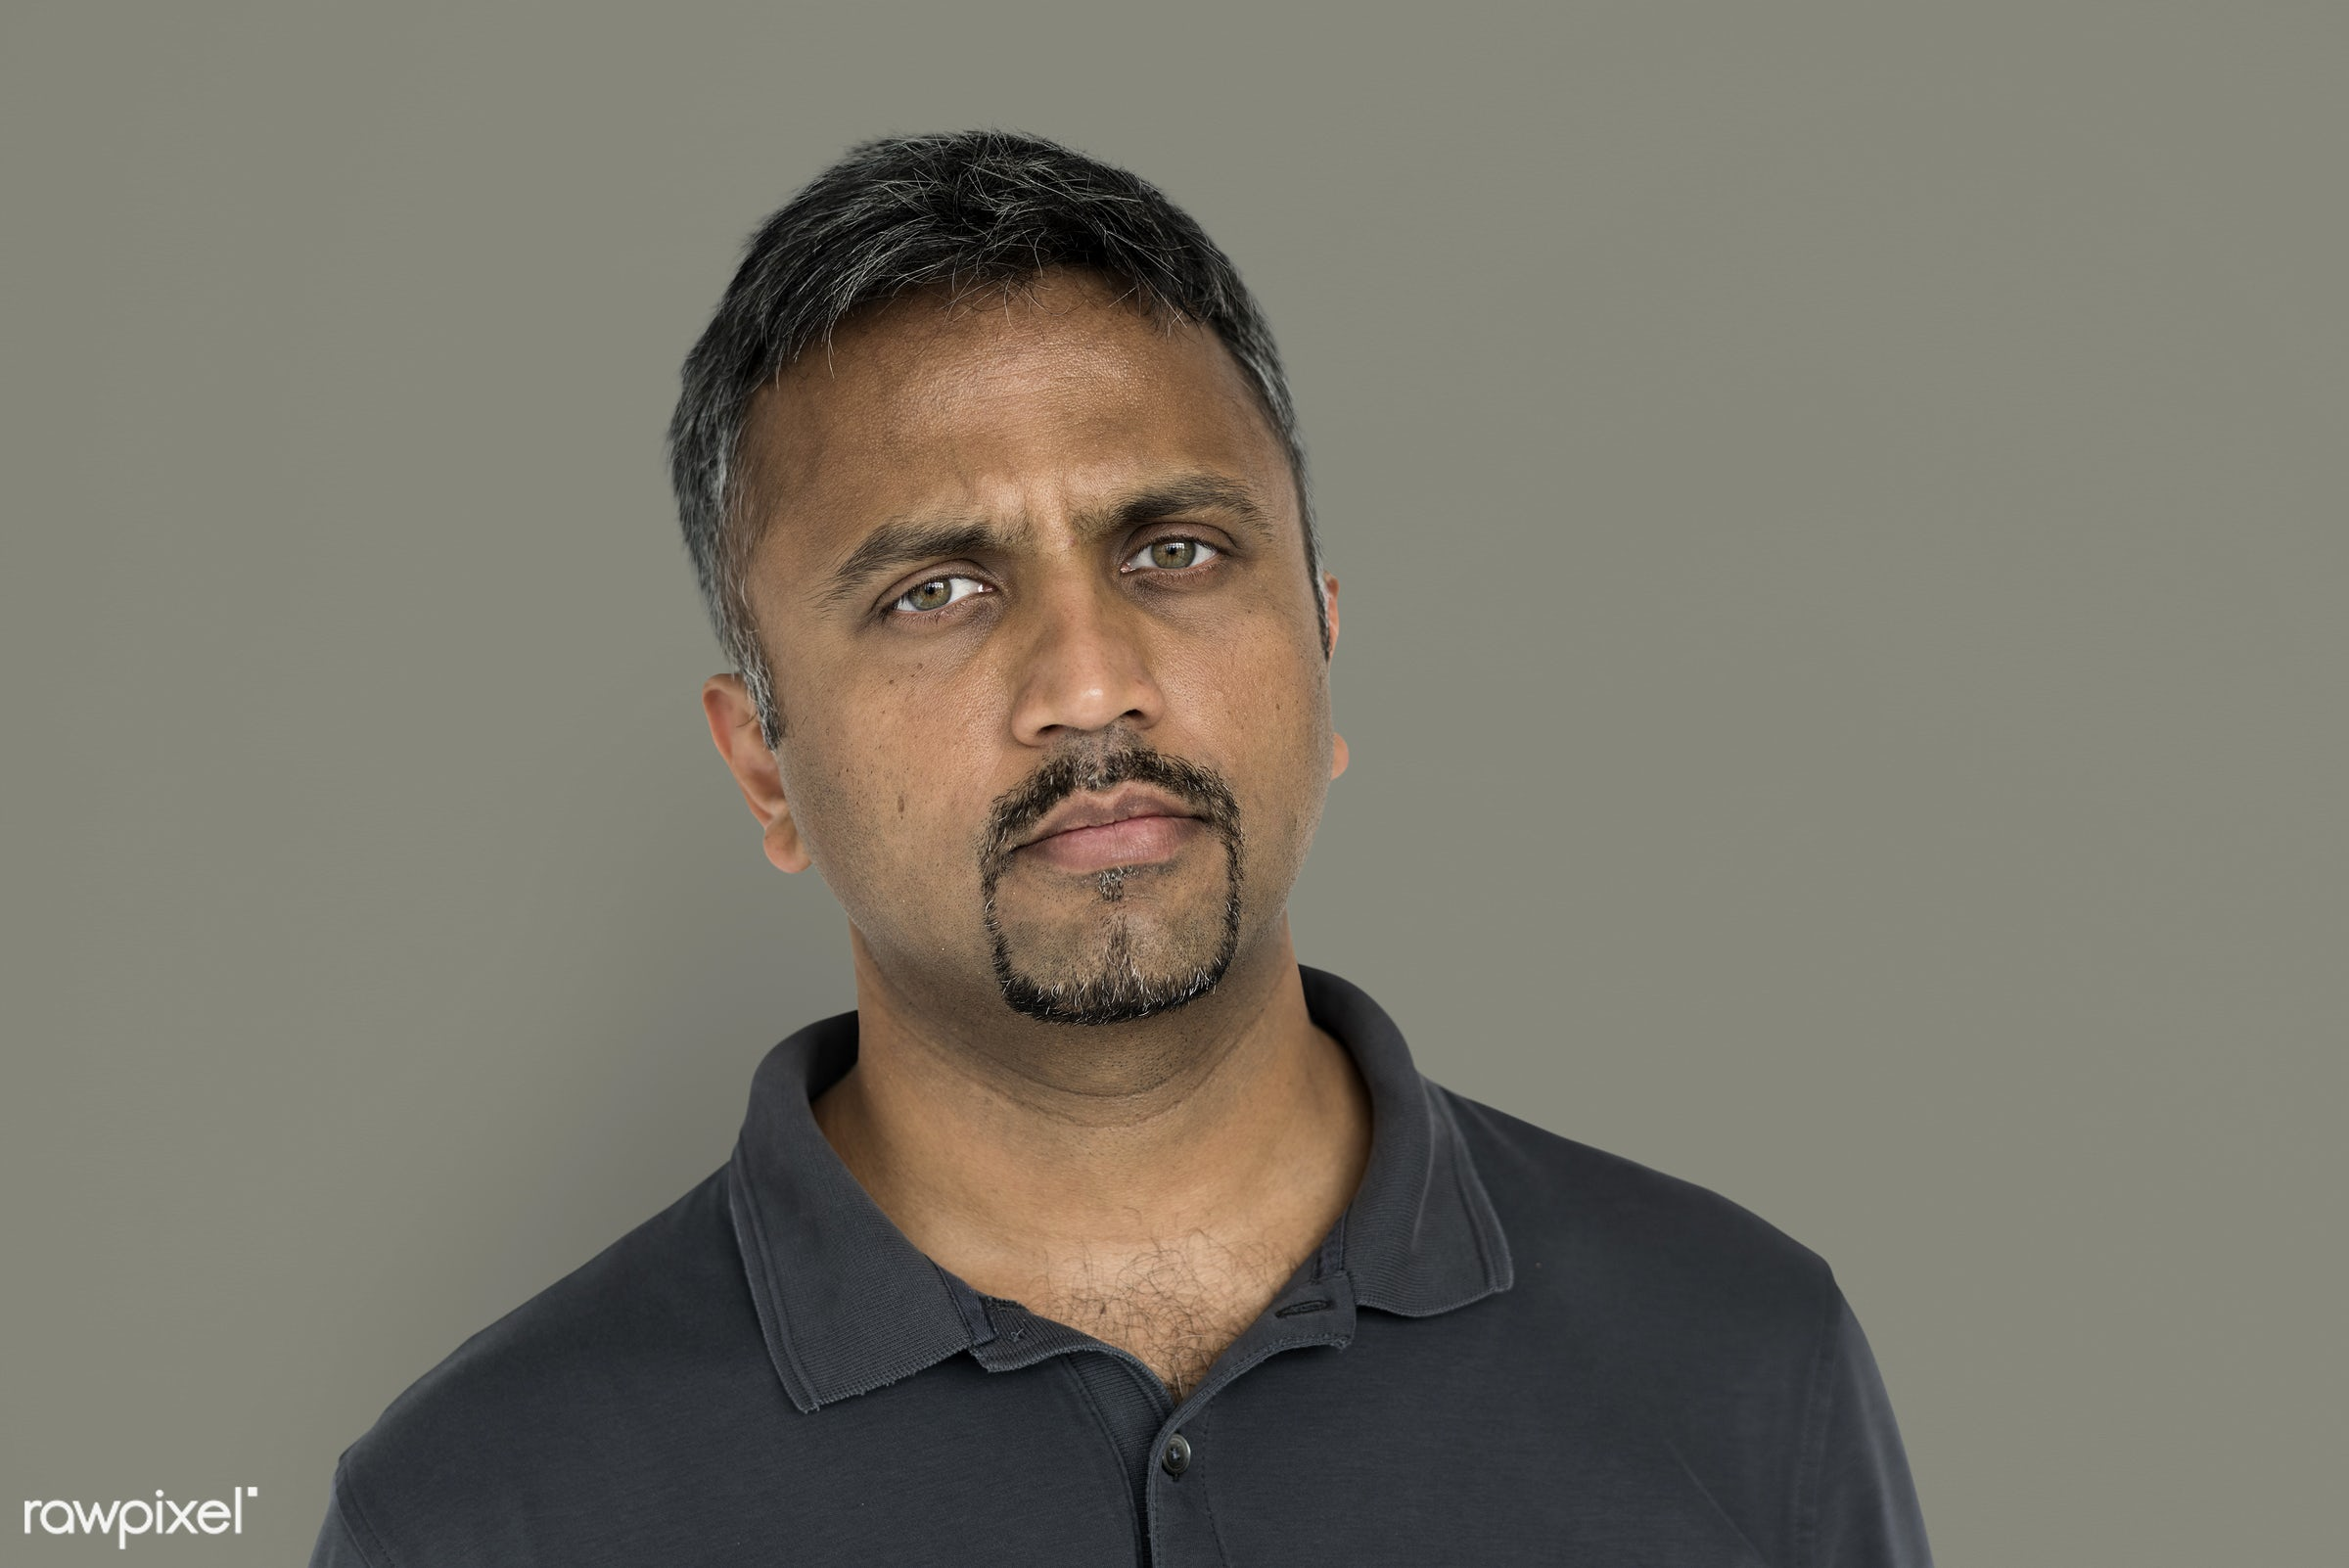 expression, studio, model, person, people, race, style, solo, lifestyle, casual, man, isolated, guy, male, indian, portrait...